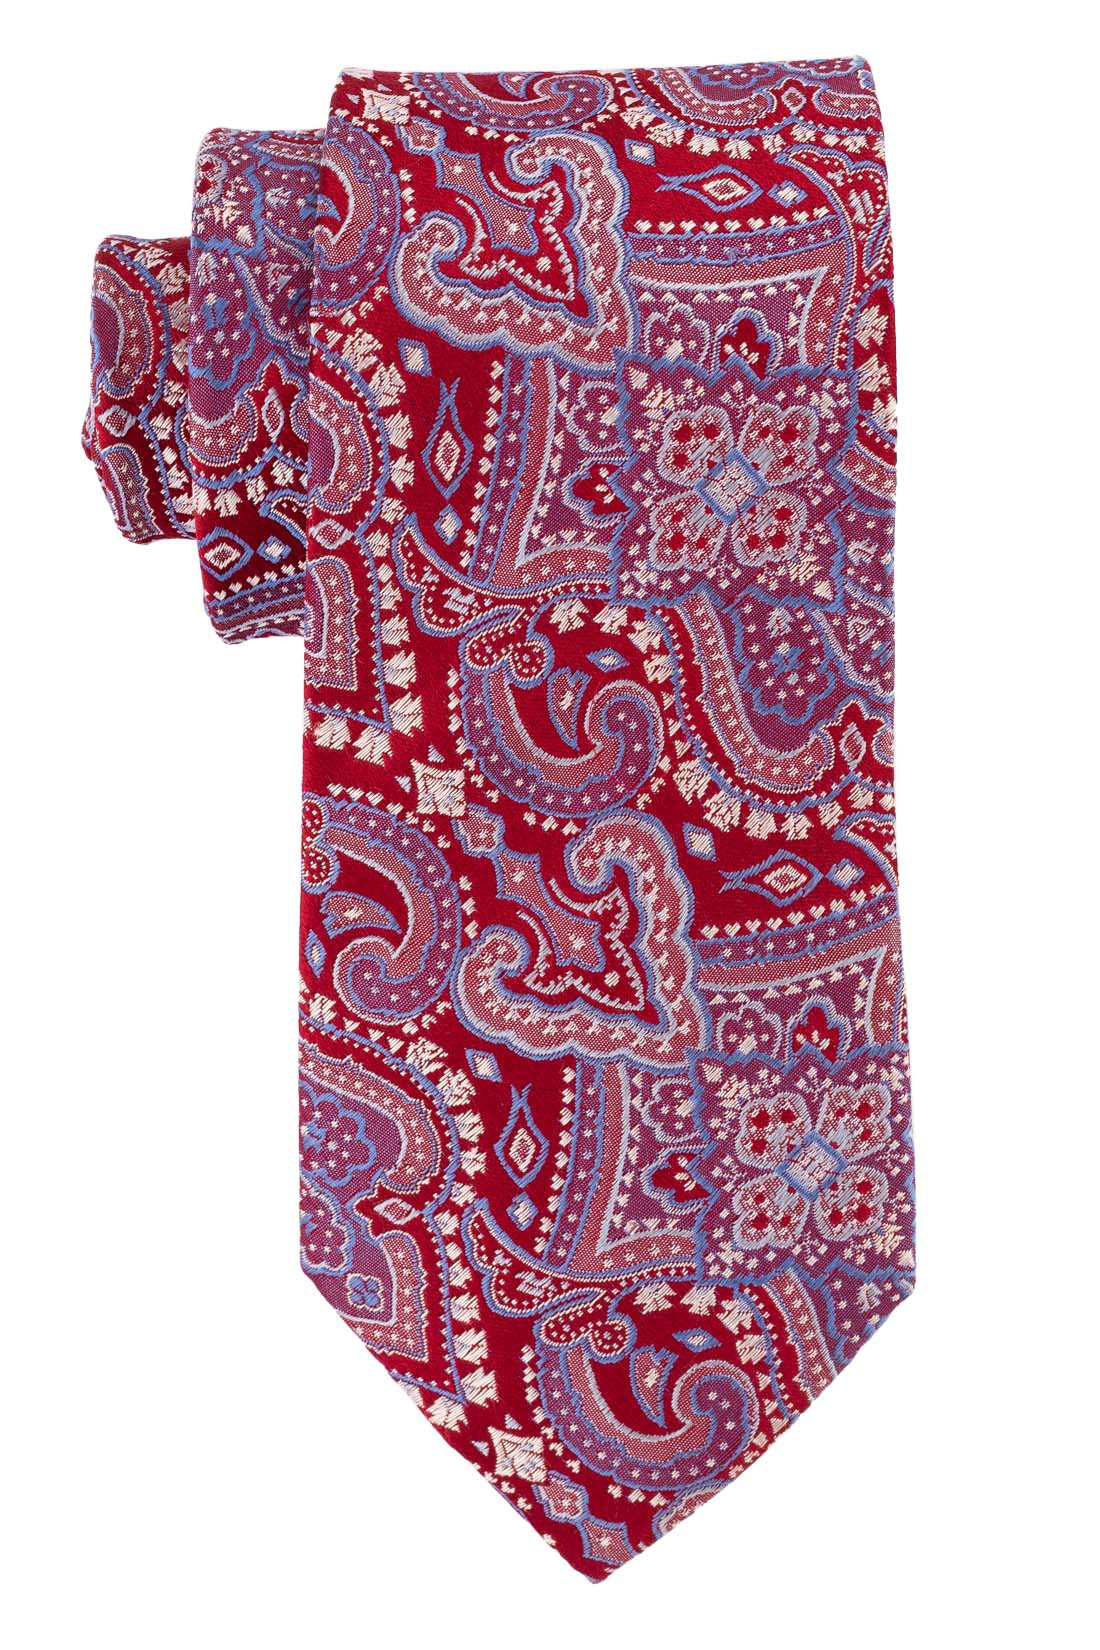 Twill Paisley Red and Blue 100% Silk Necktie